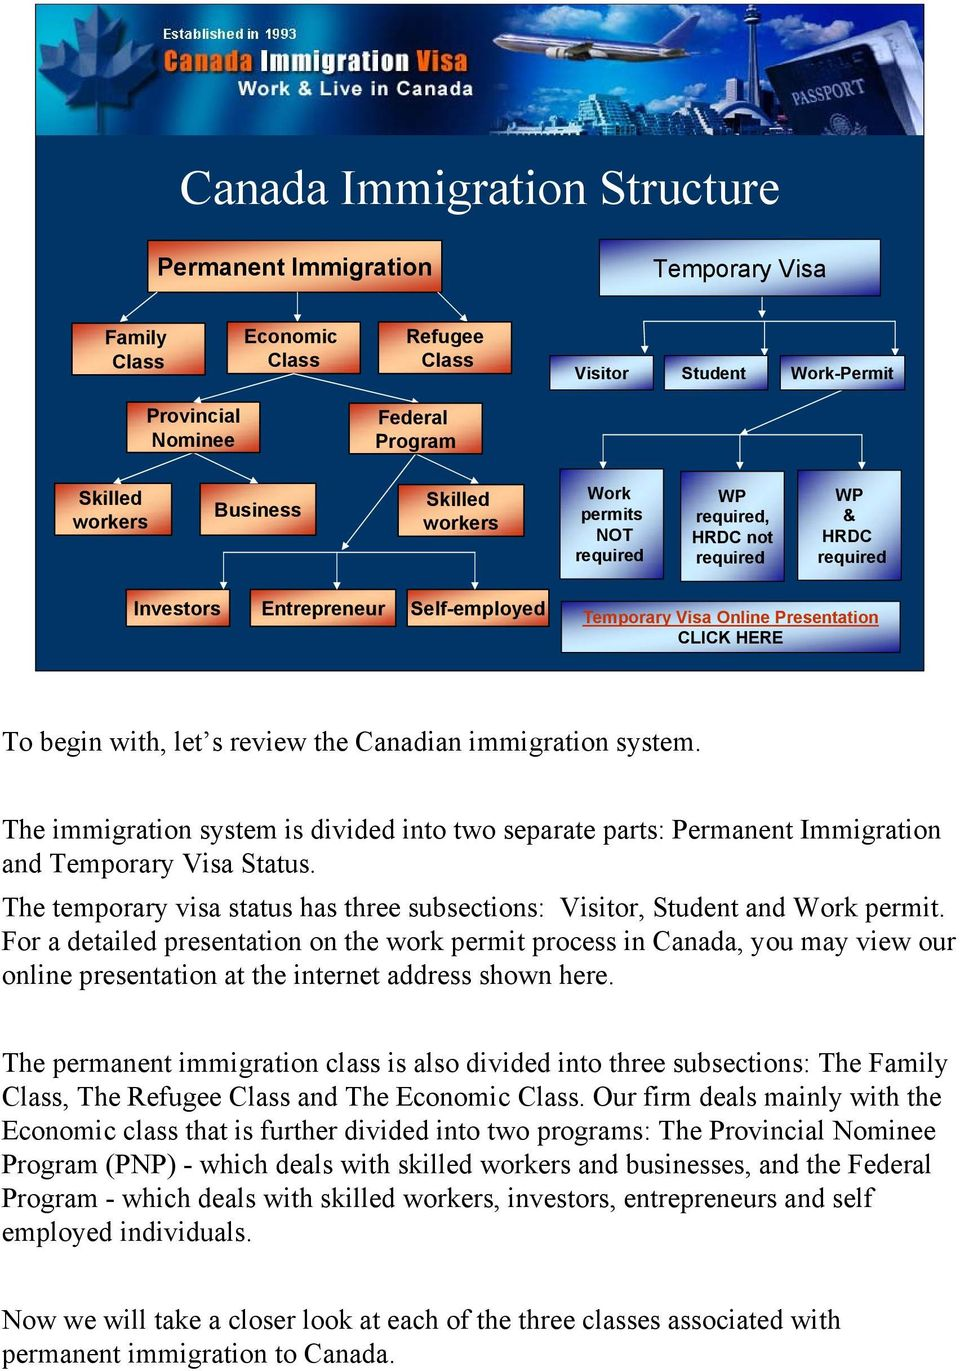 immigration system. The immigration system is divided into two separate parts: Permanent Immigration and Temporary Visa Status.